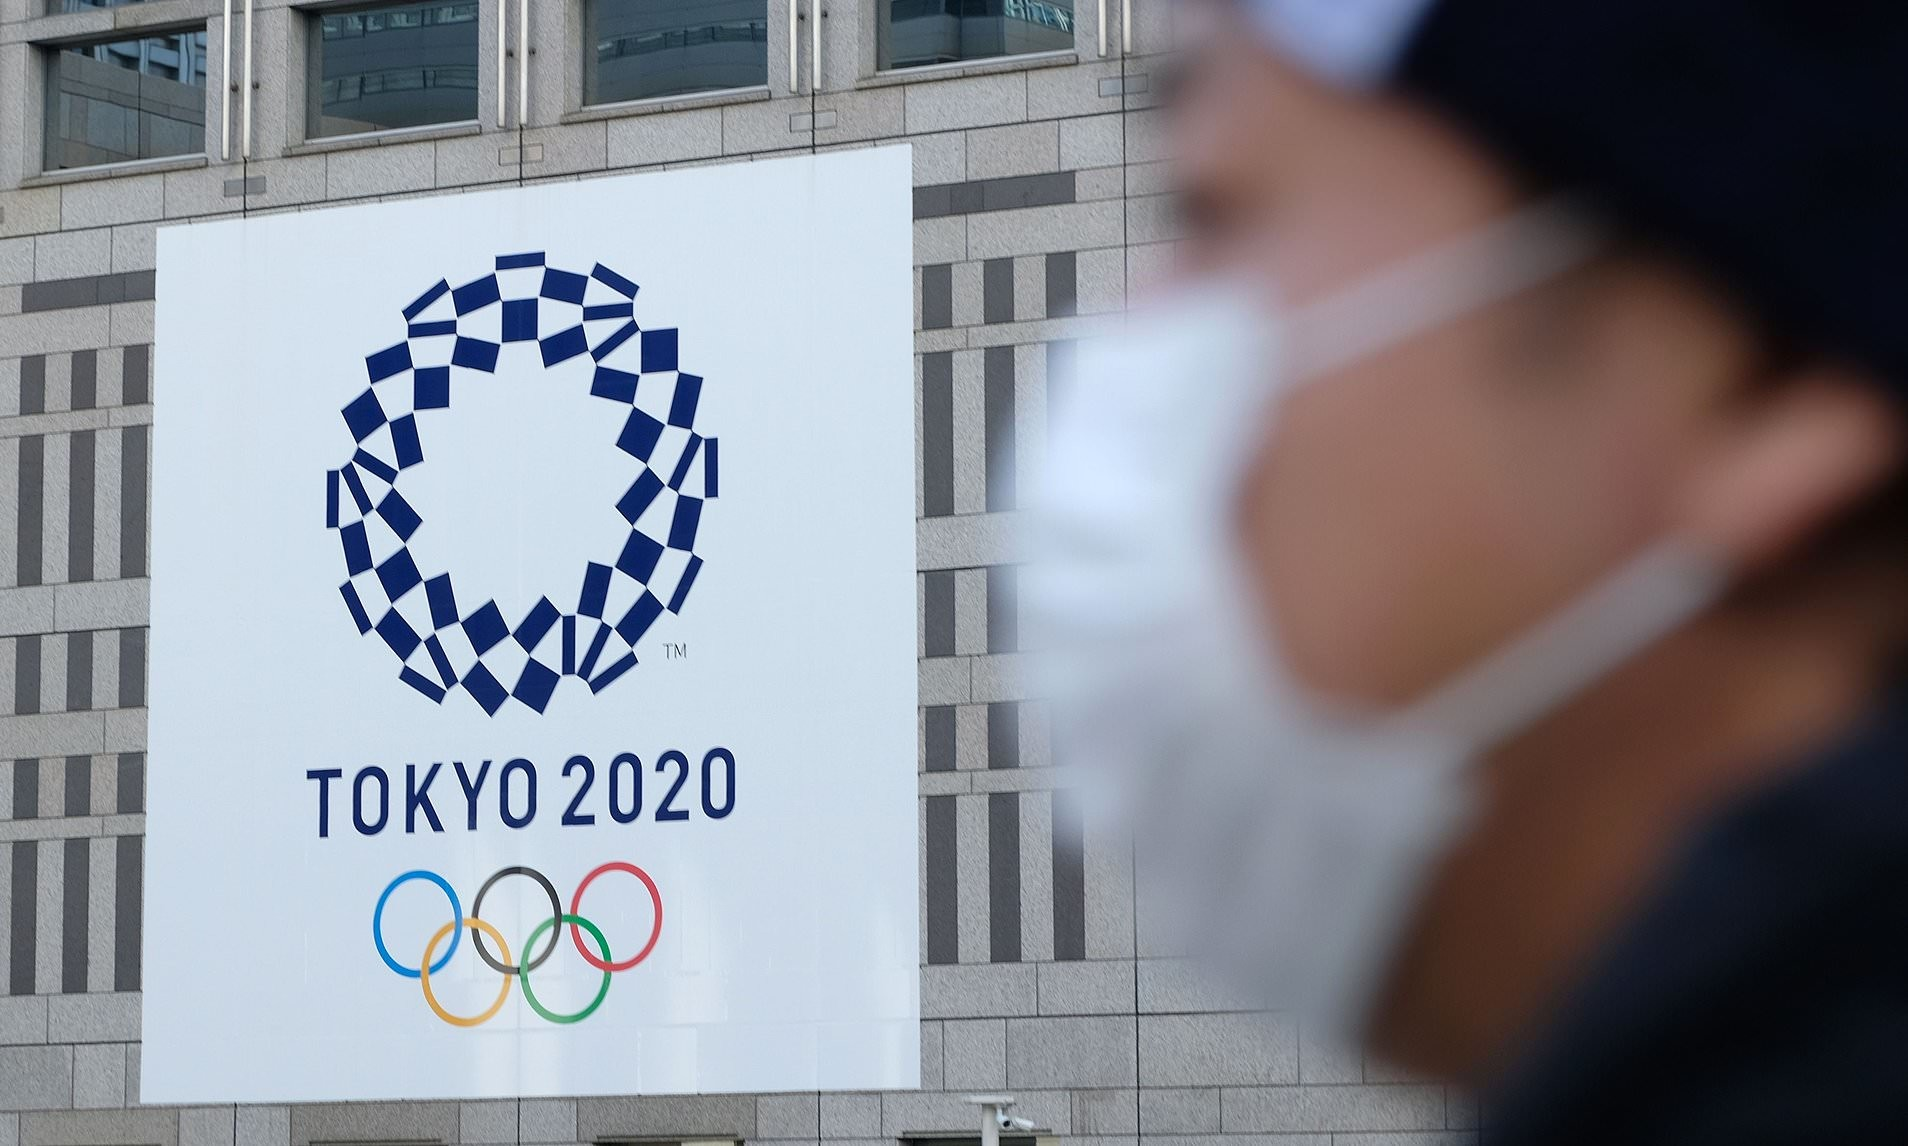 Tokyo 2020 organizers are planning to test all foreign athletes for COVID-19 when they arrive in Japan for the Olympic Games